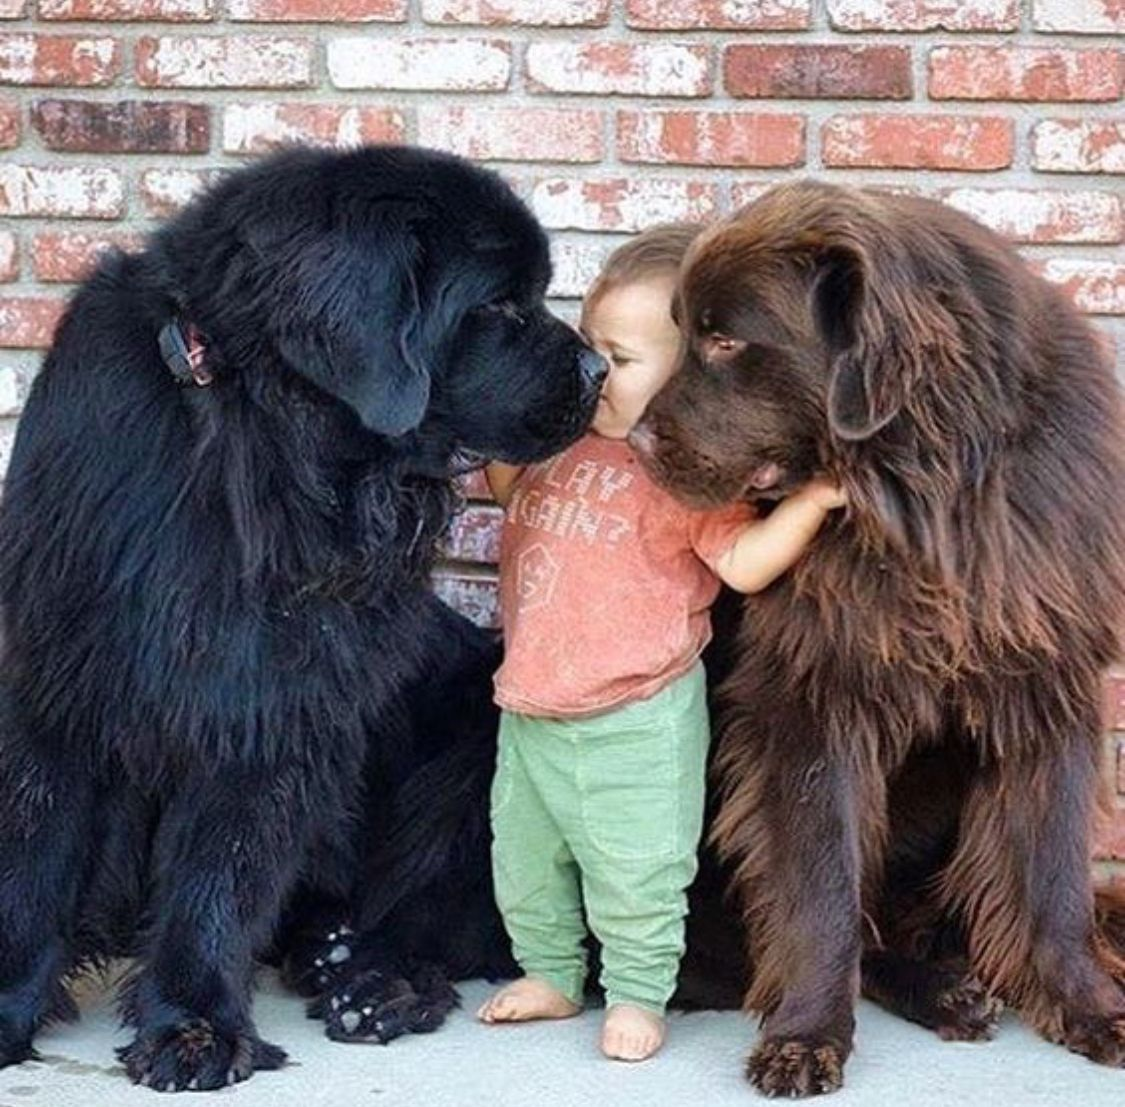 Pin by Gail Roest on precious moments Pinterest Dogs Pets and